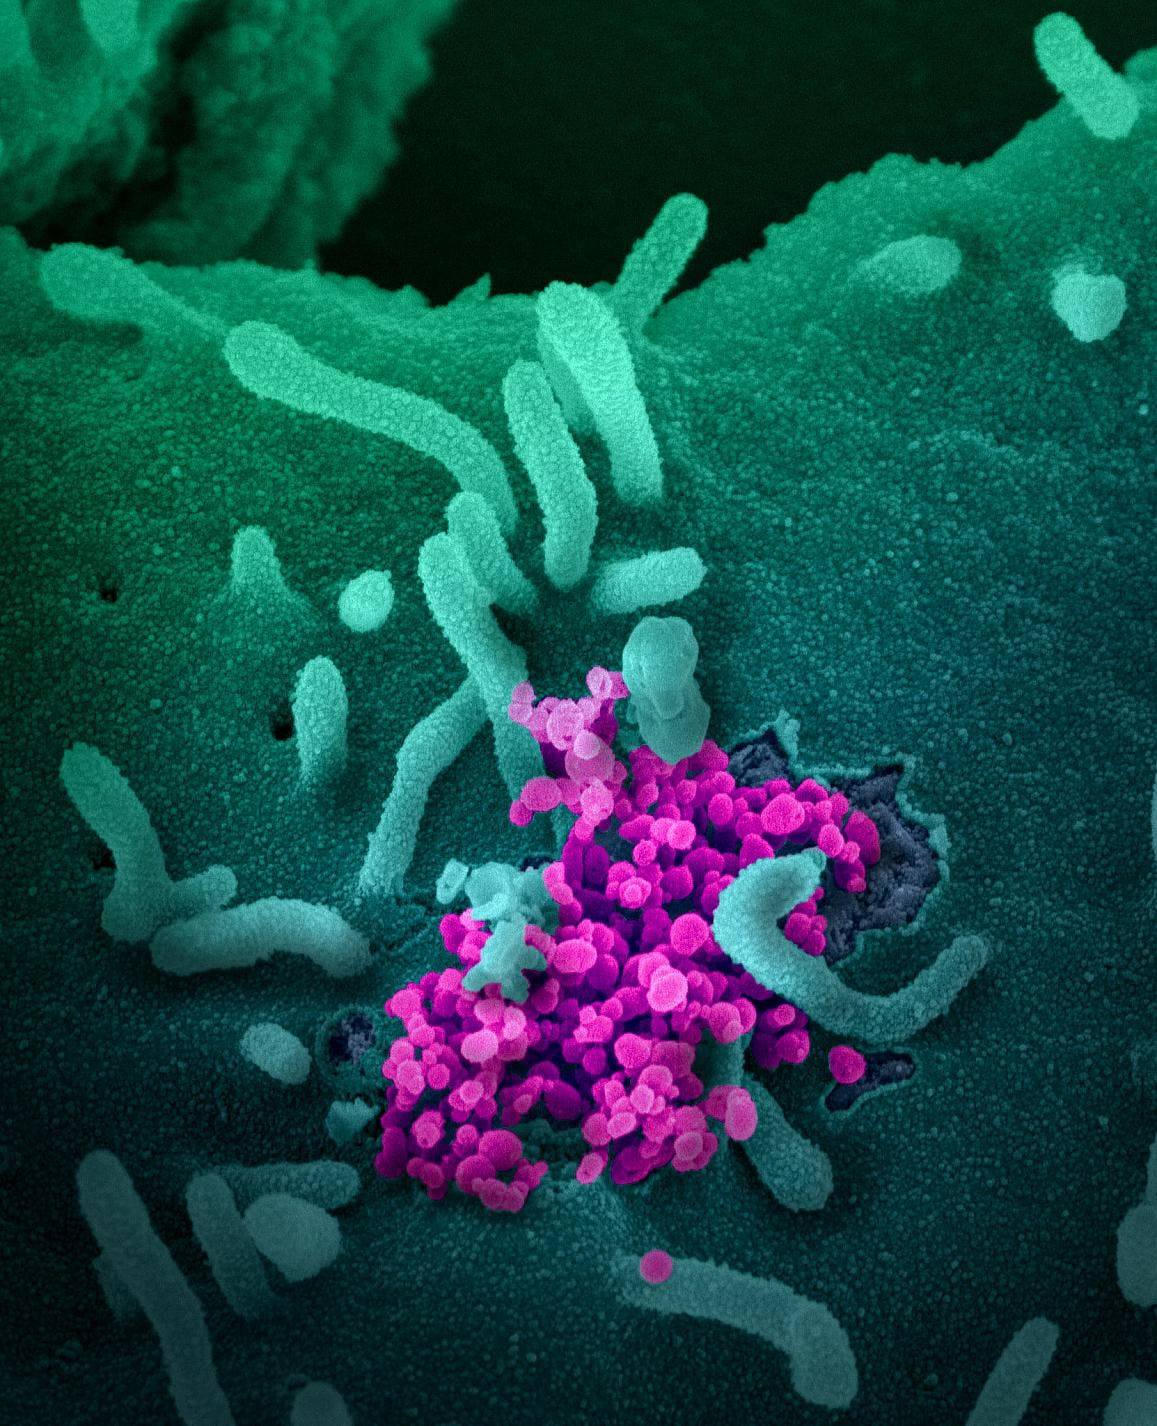 SARS-CoV-2, coronavirus, emerging from a cell cultured in a lab.